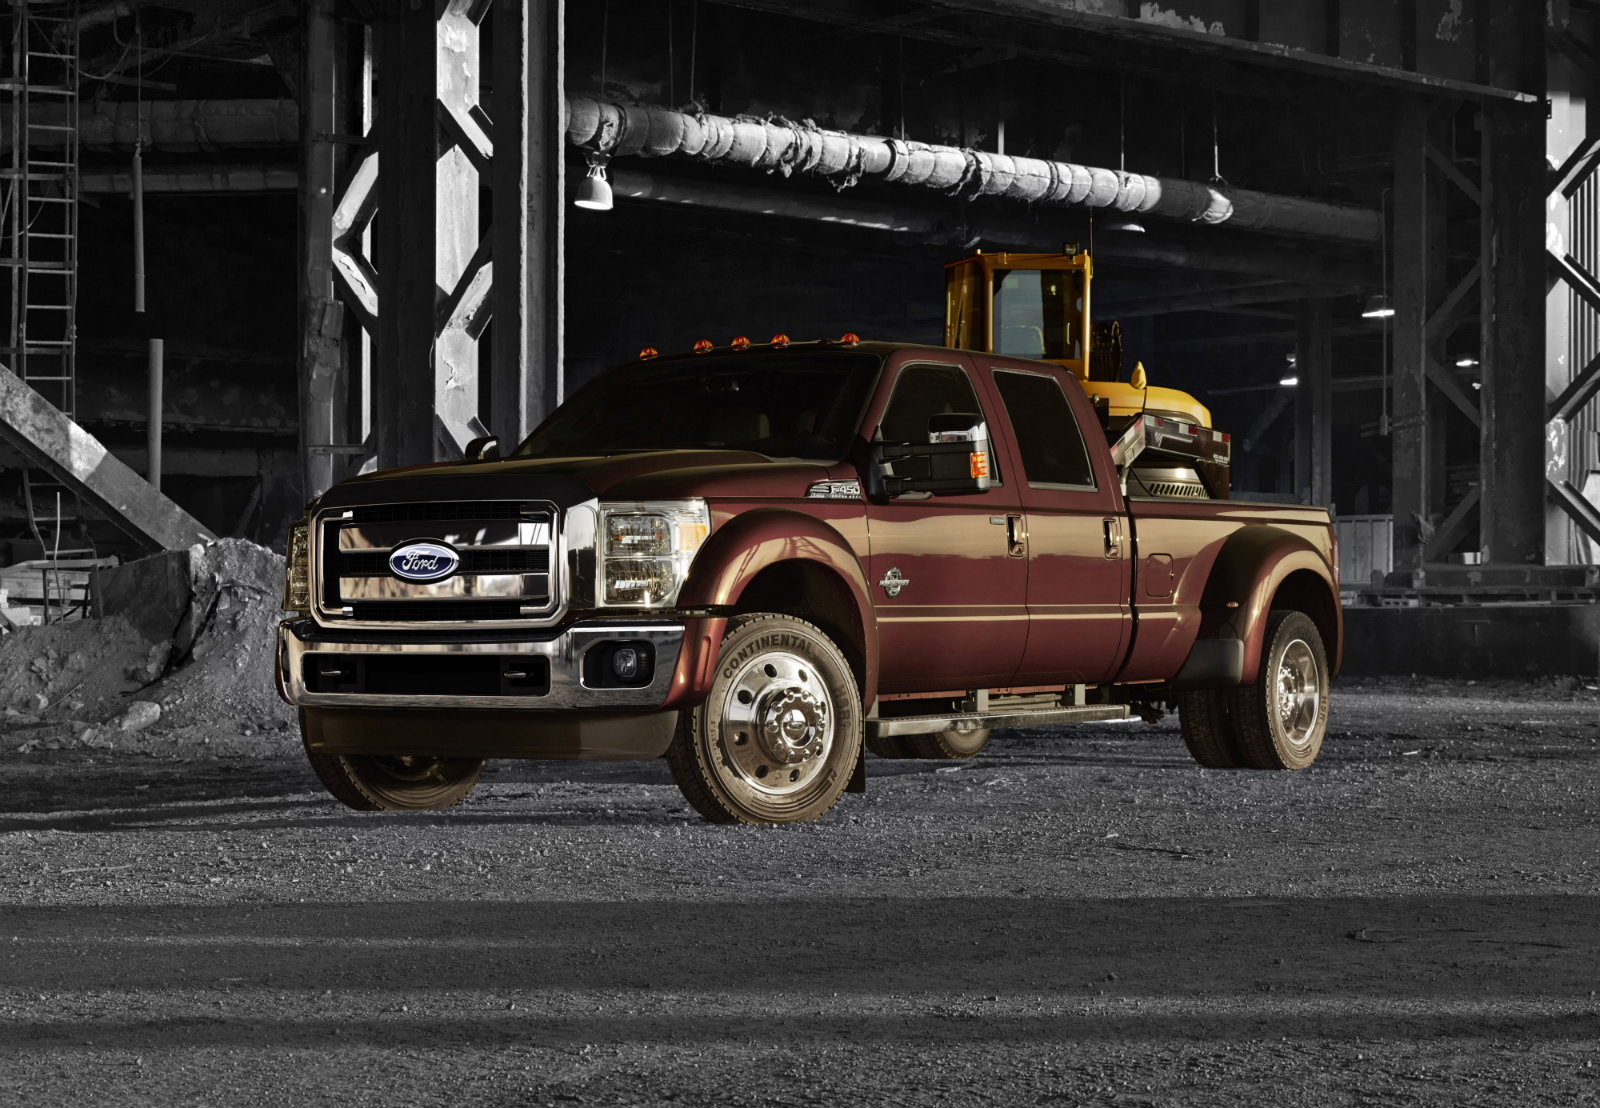 2017 F 350 Towing Capacity >> 2015 Ford Super Duty F-450 Boasts 31,200 Pounds Towing Capacity - autoevolution